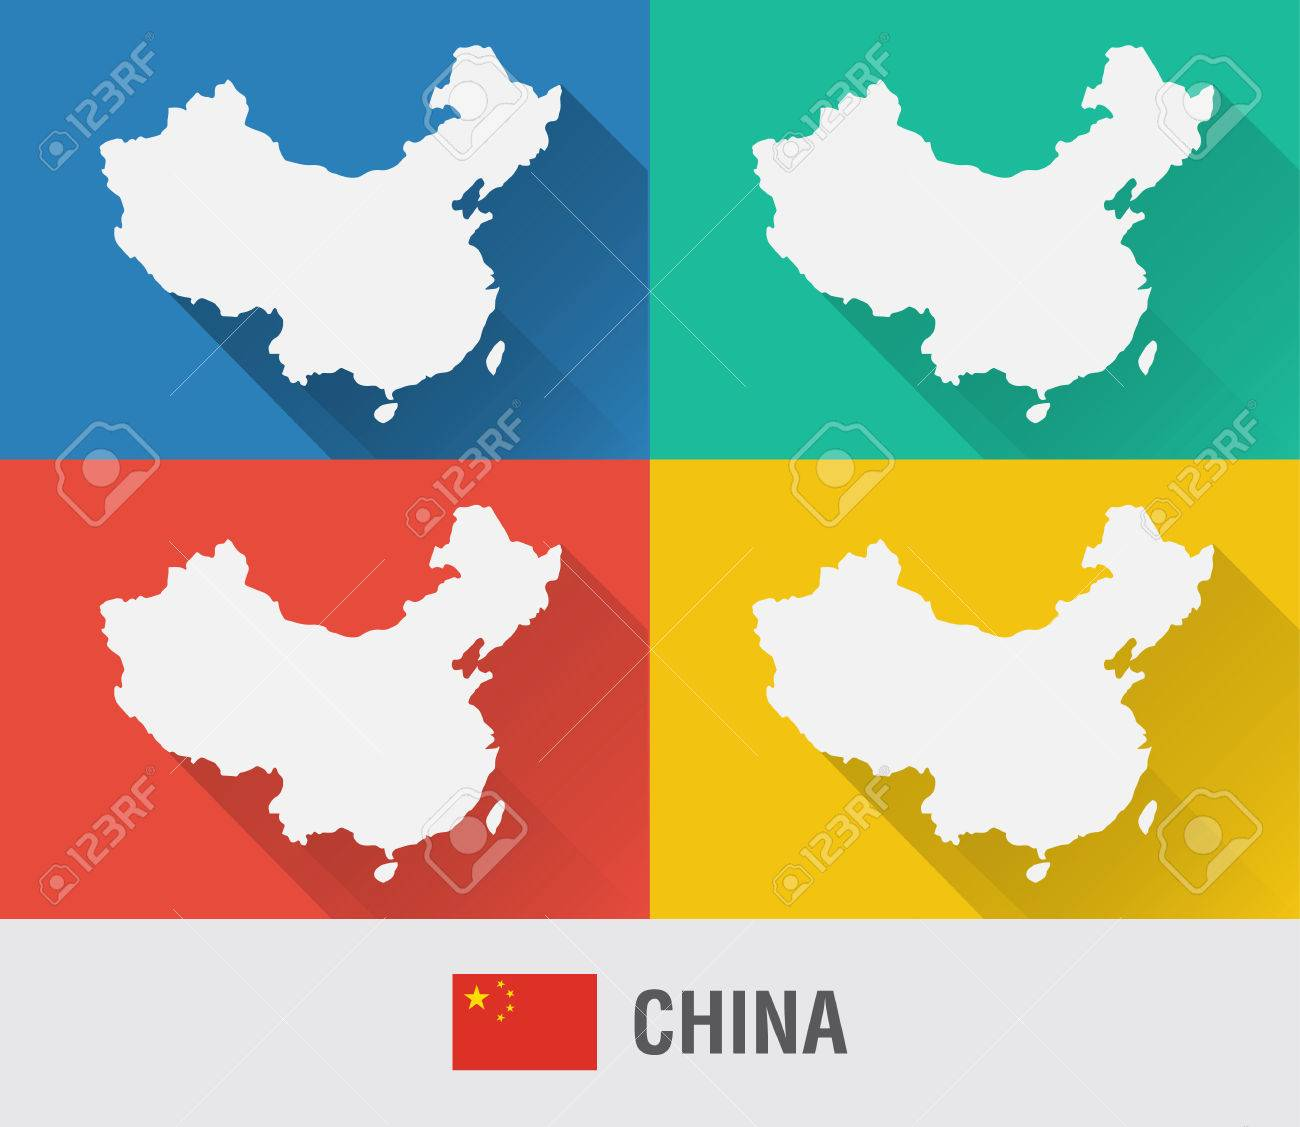 China World Map In Flat Style With 4 Colors. Modern Map Design ... on